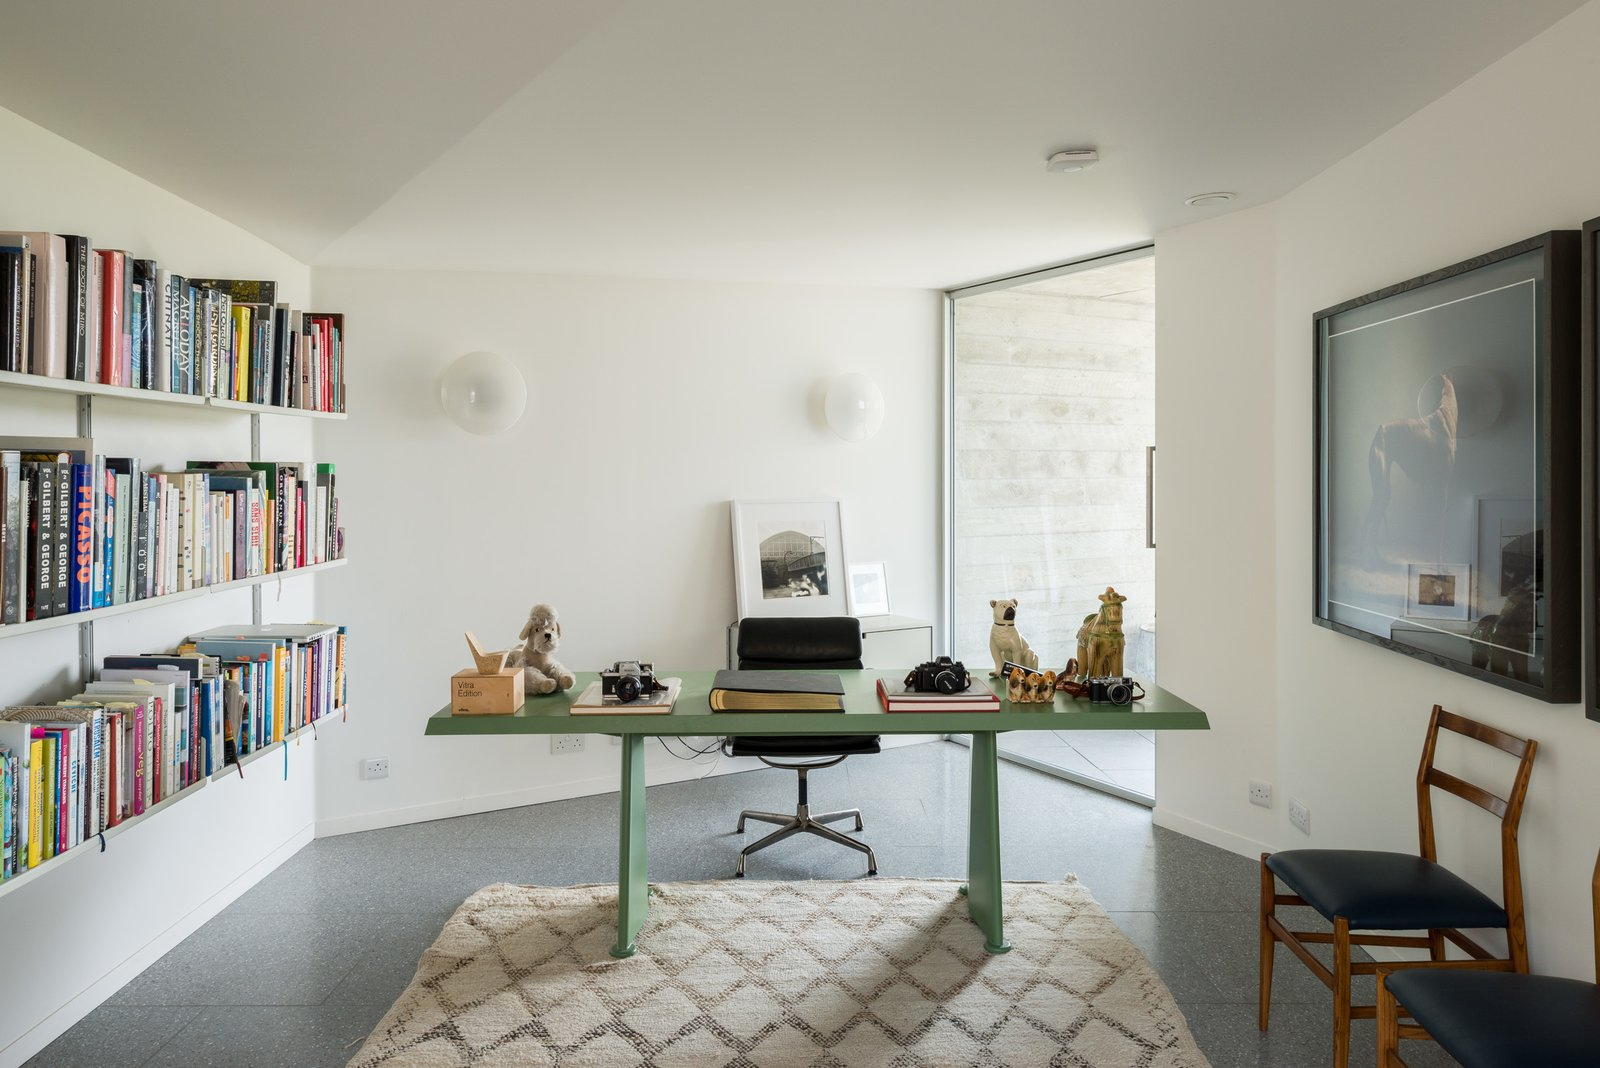 Tagged: Office, Shelves, Library, Chair, Study, Desk, and Terrazzo Floor.  Photo 8 of 12 in Explore a Prefabricated House For Sale in England That's Clad With Cor-Ten Steel